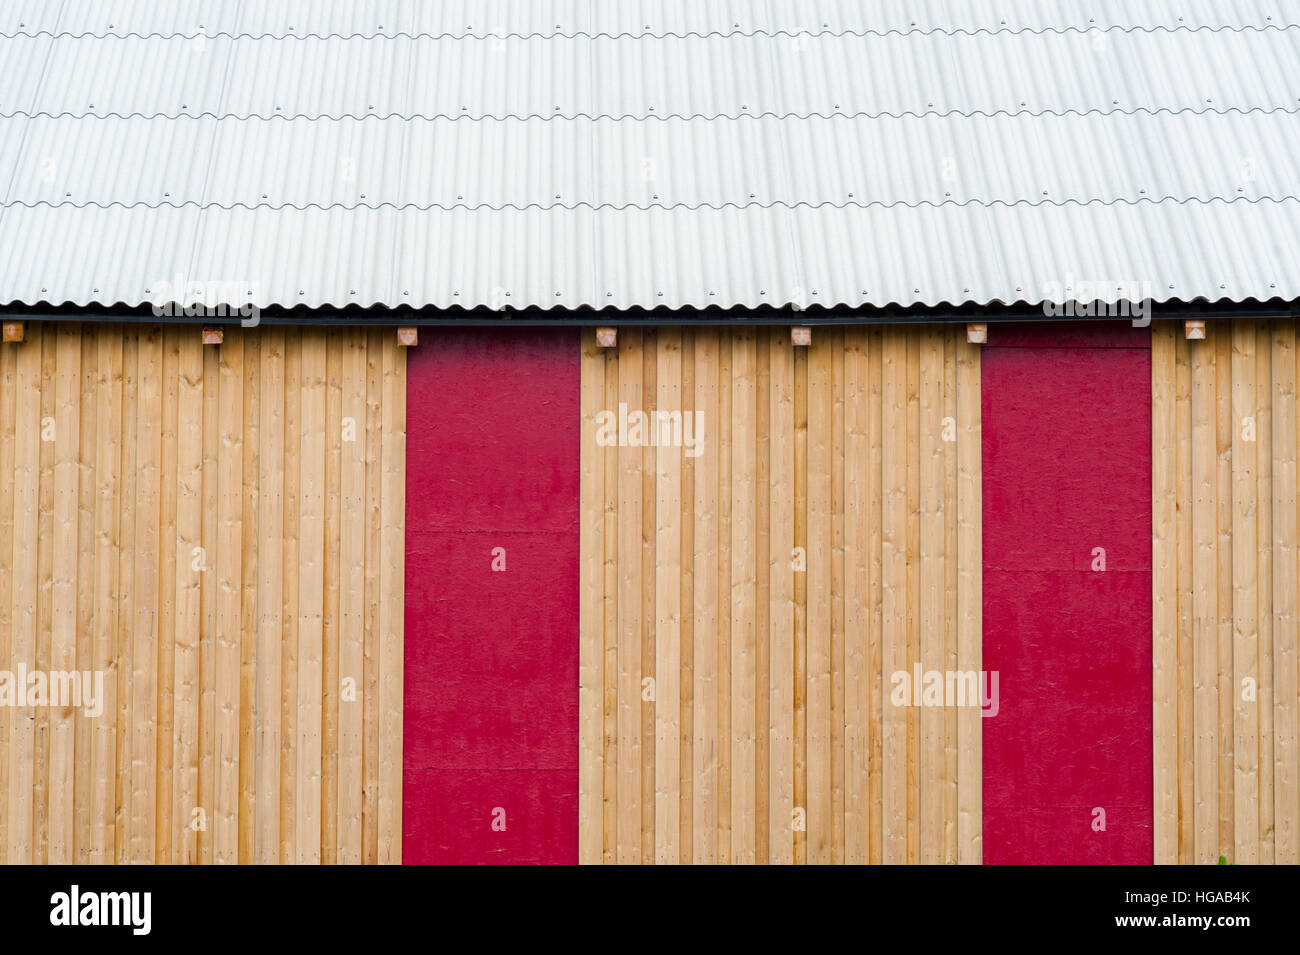 Side view of a wooden warehouse with red insets and white laminated roof - Stock Image